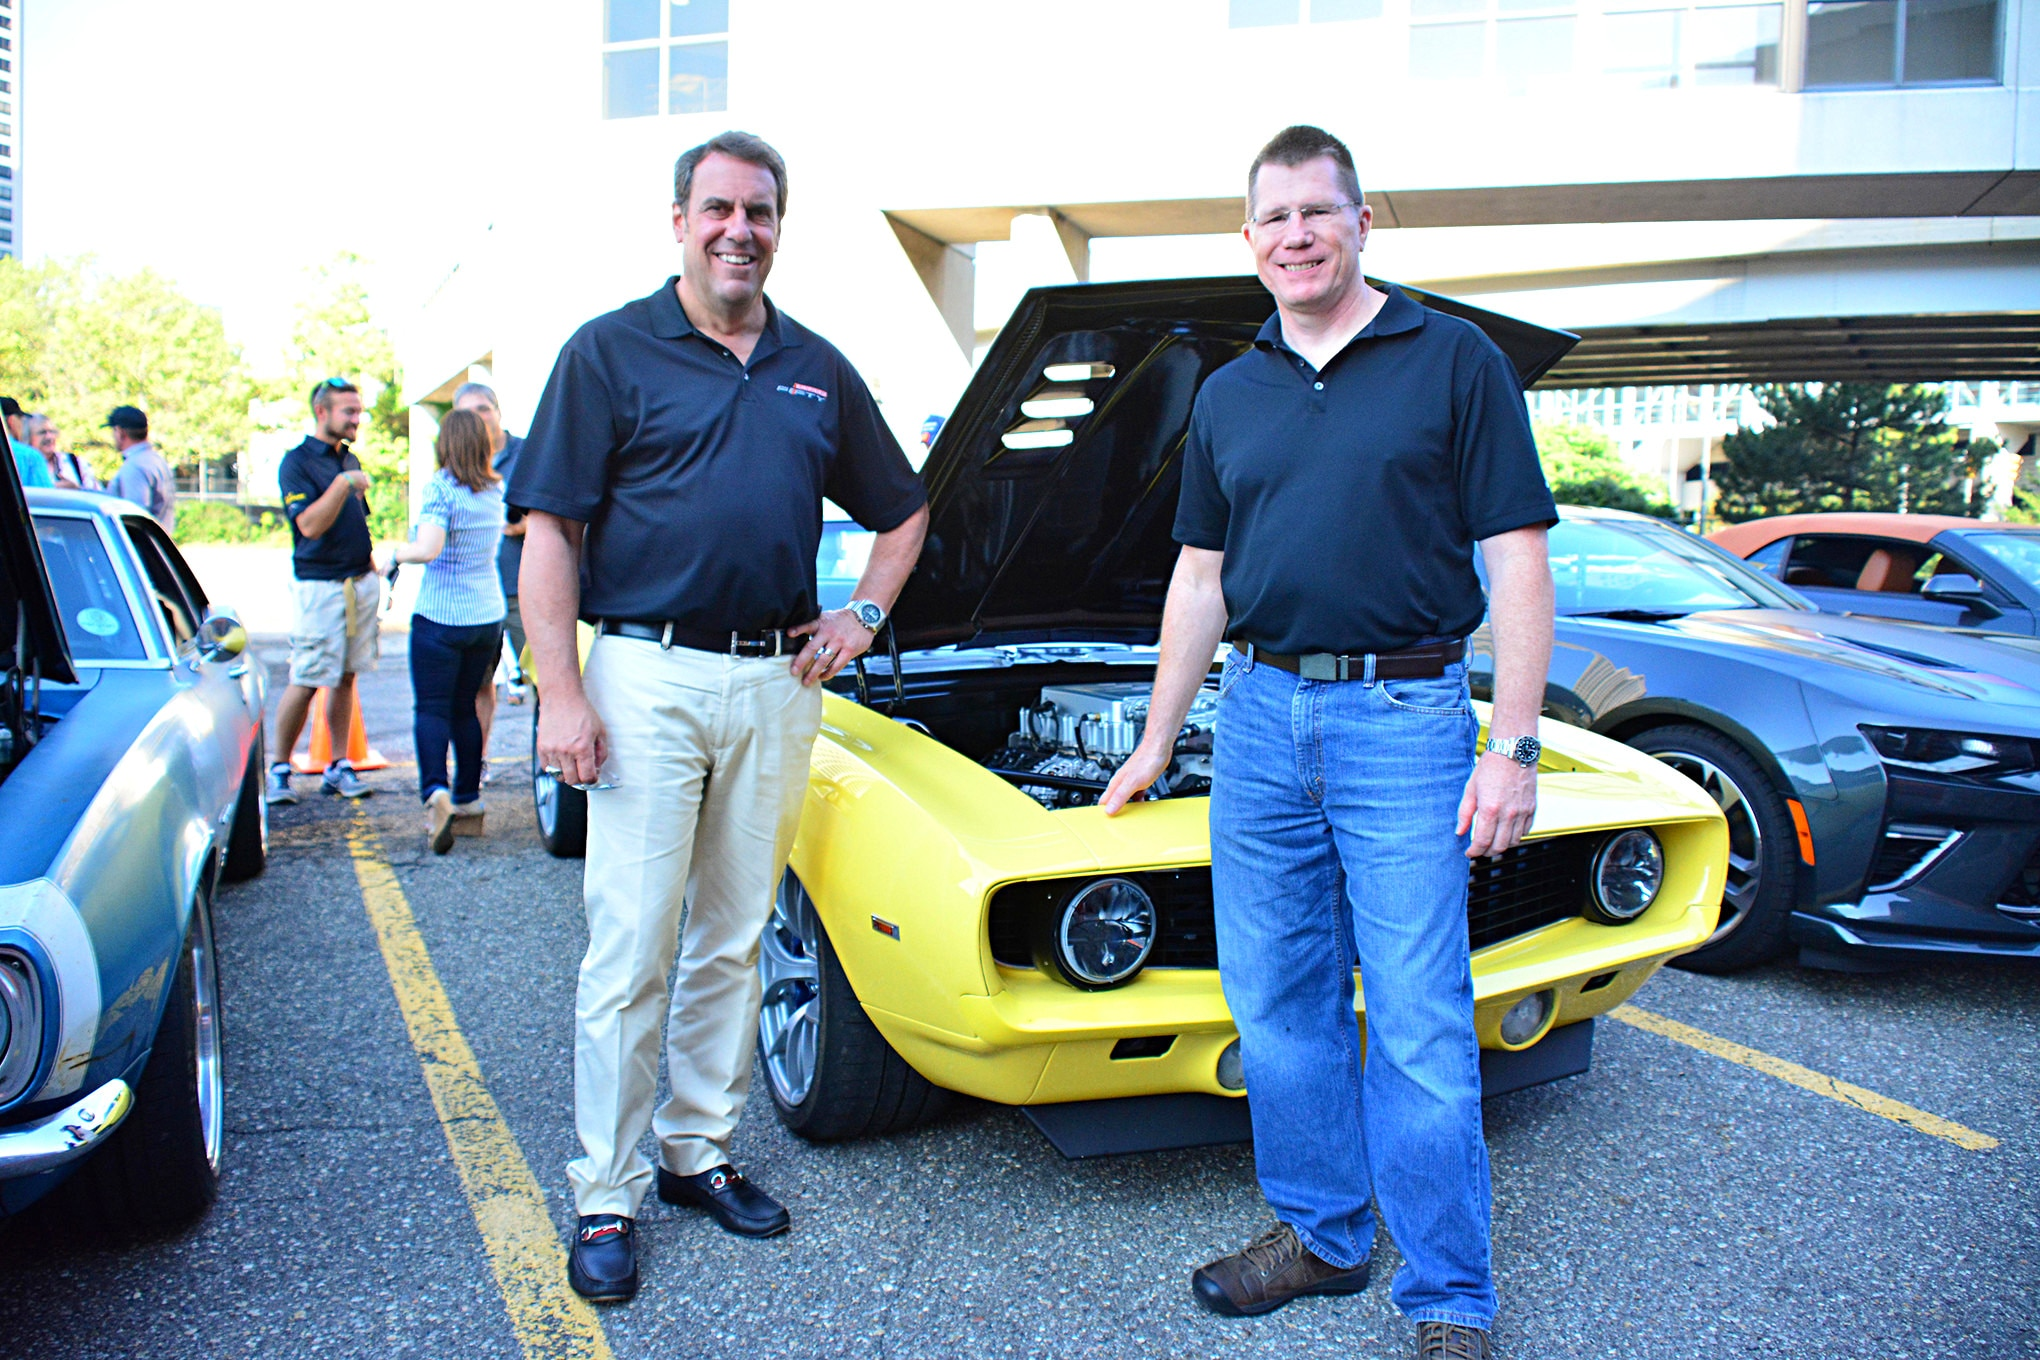 Mark Reuss might be a VP at GM, but he's a regular car guy that's passionate about the Camaro. He's also a good friend with Pro-Touring pioneer and GM engineer Mark Stielow.